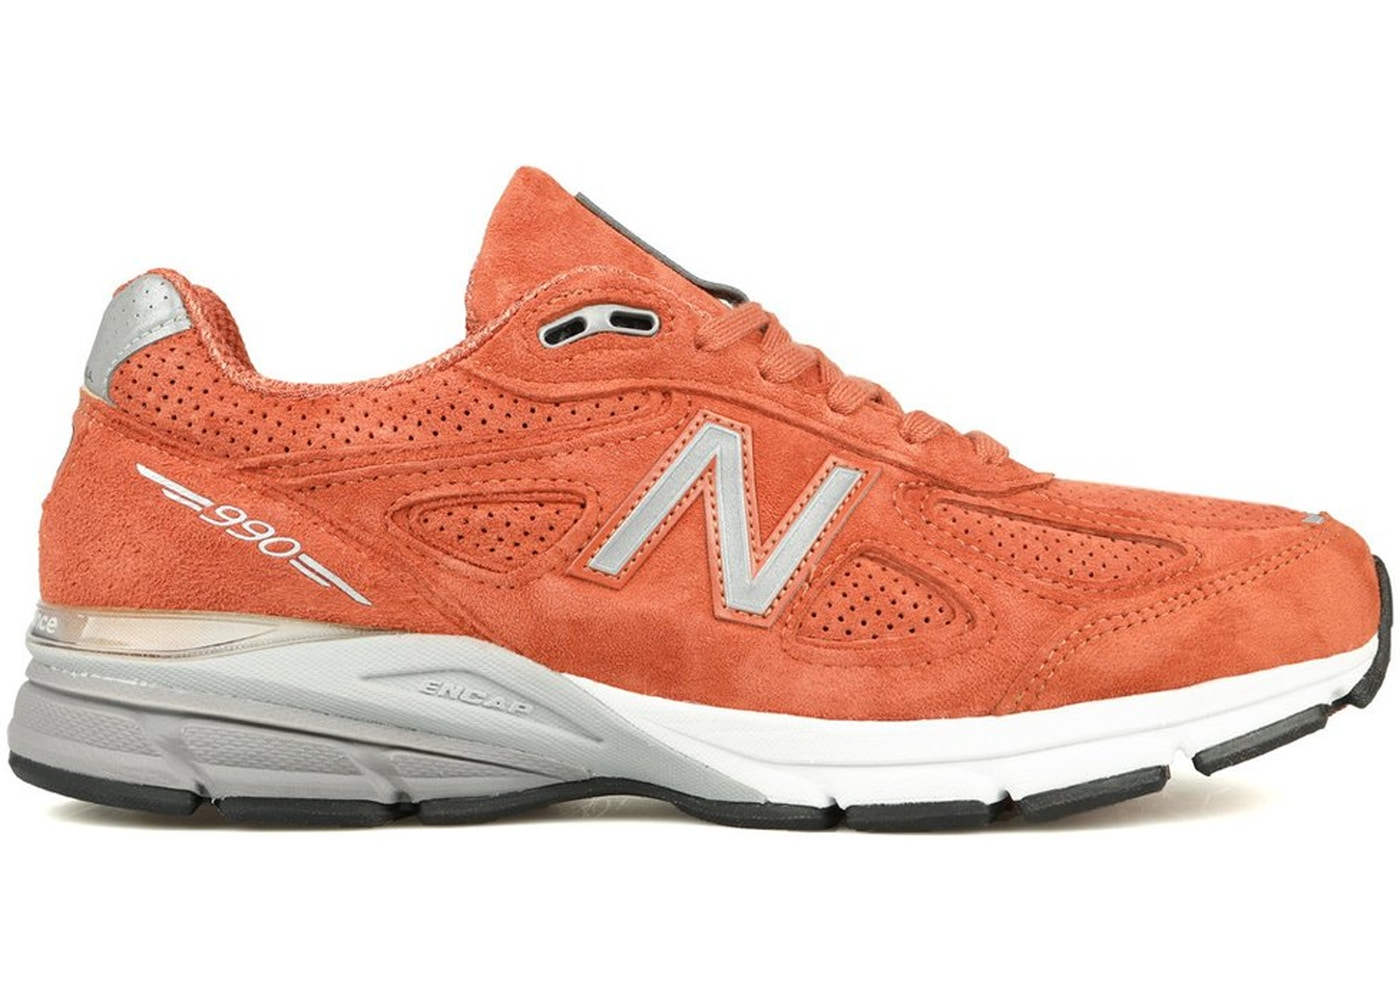 8d80e7d2ee067 Sell. or Ask. Size: 14. View All Bids. New Balance 990v4 Jupiter